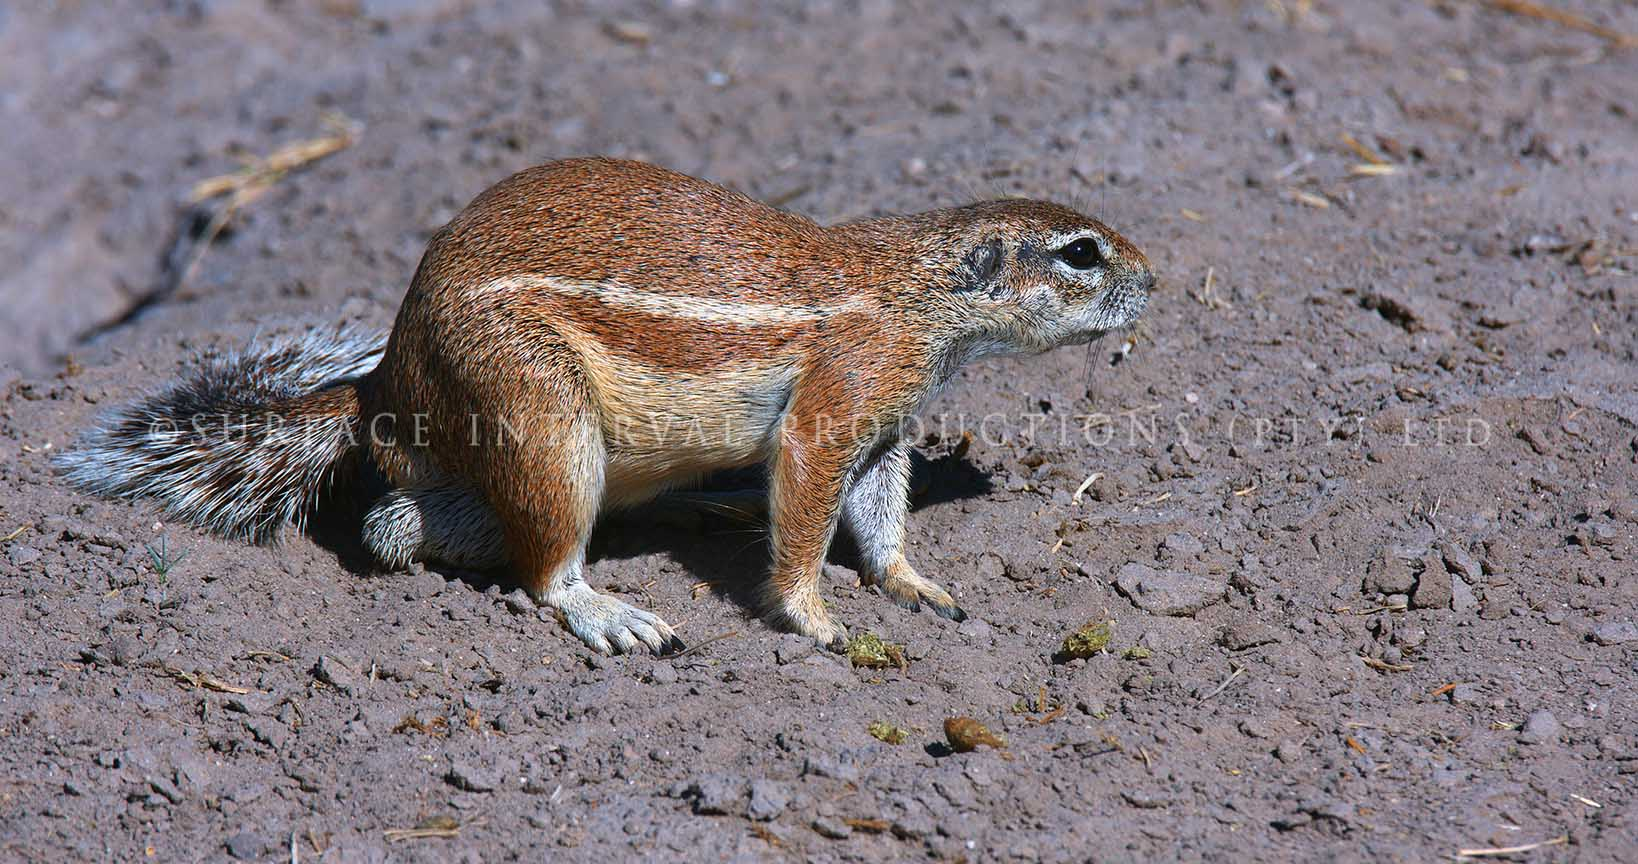 Ground Squirrel 01.jpg